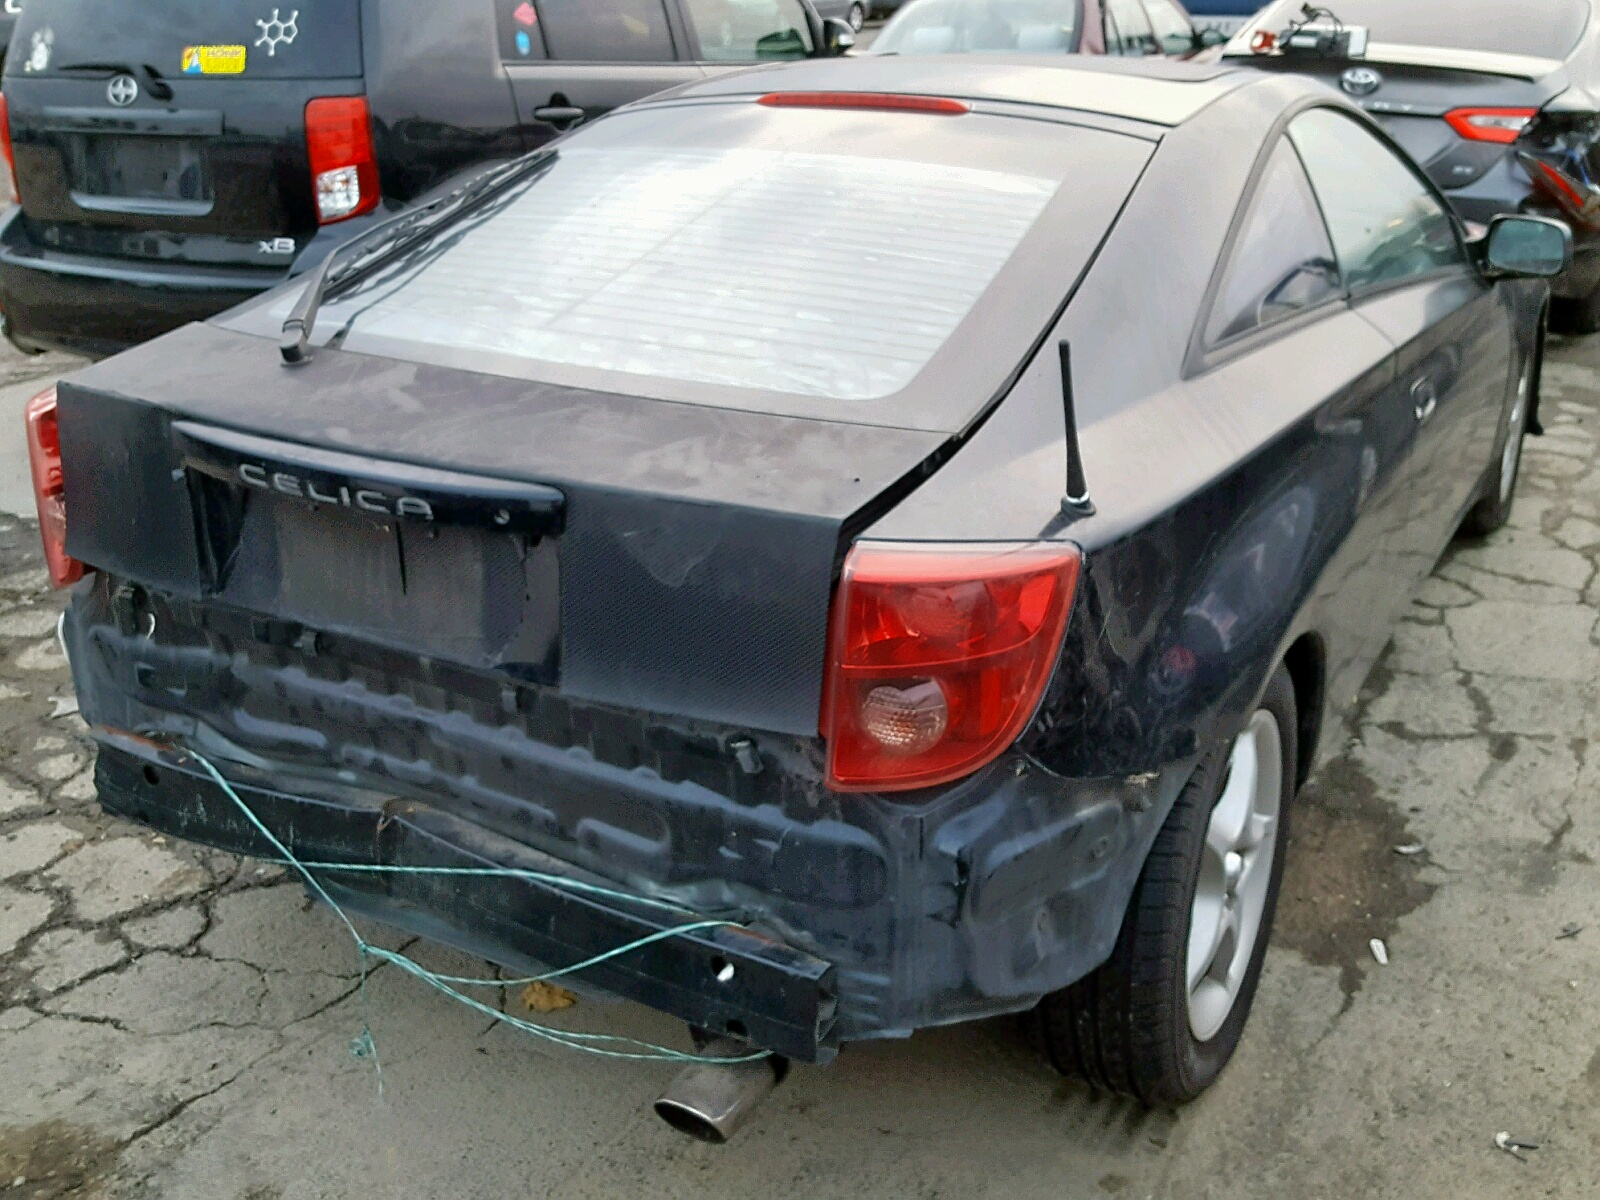 hight resolution of  2000 toyota celica gt 1 8l rear view